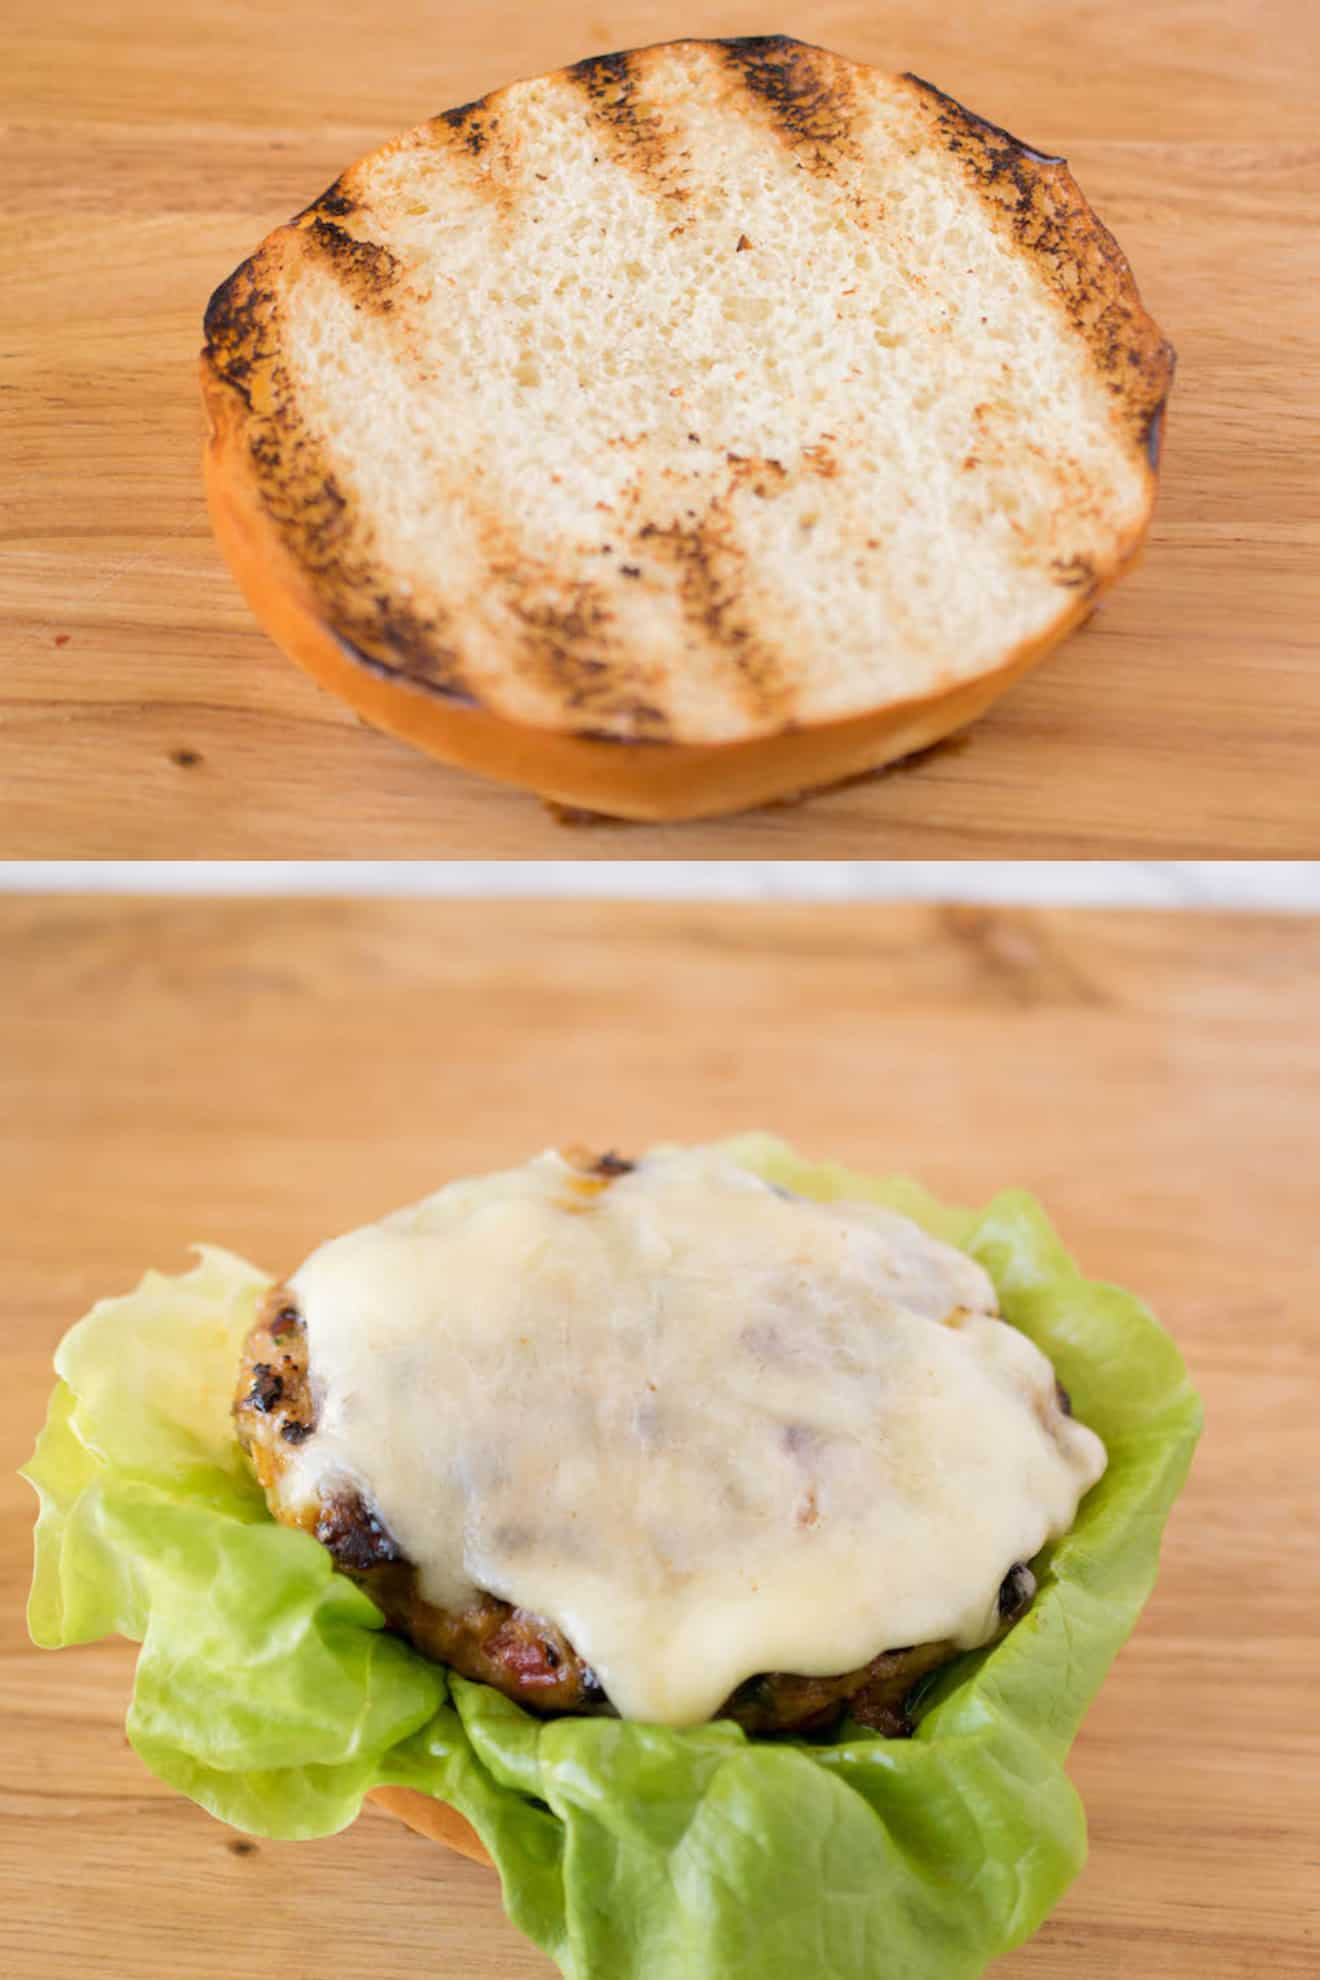 A grilled bun and a burger with melted cheese on lettuce